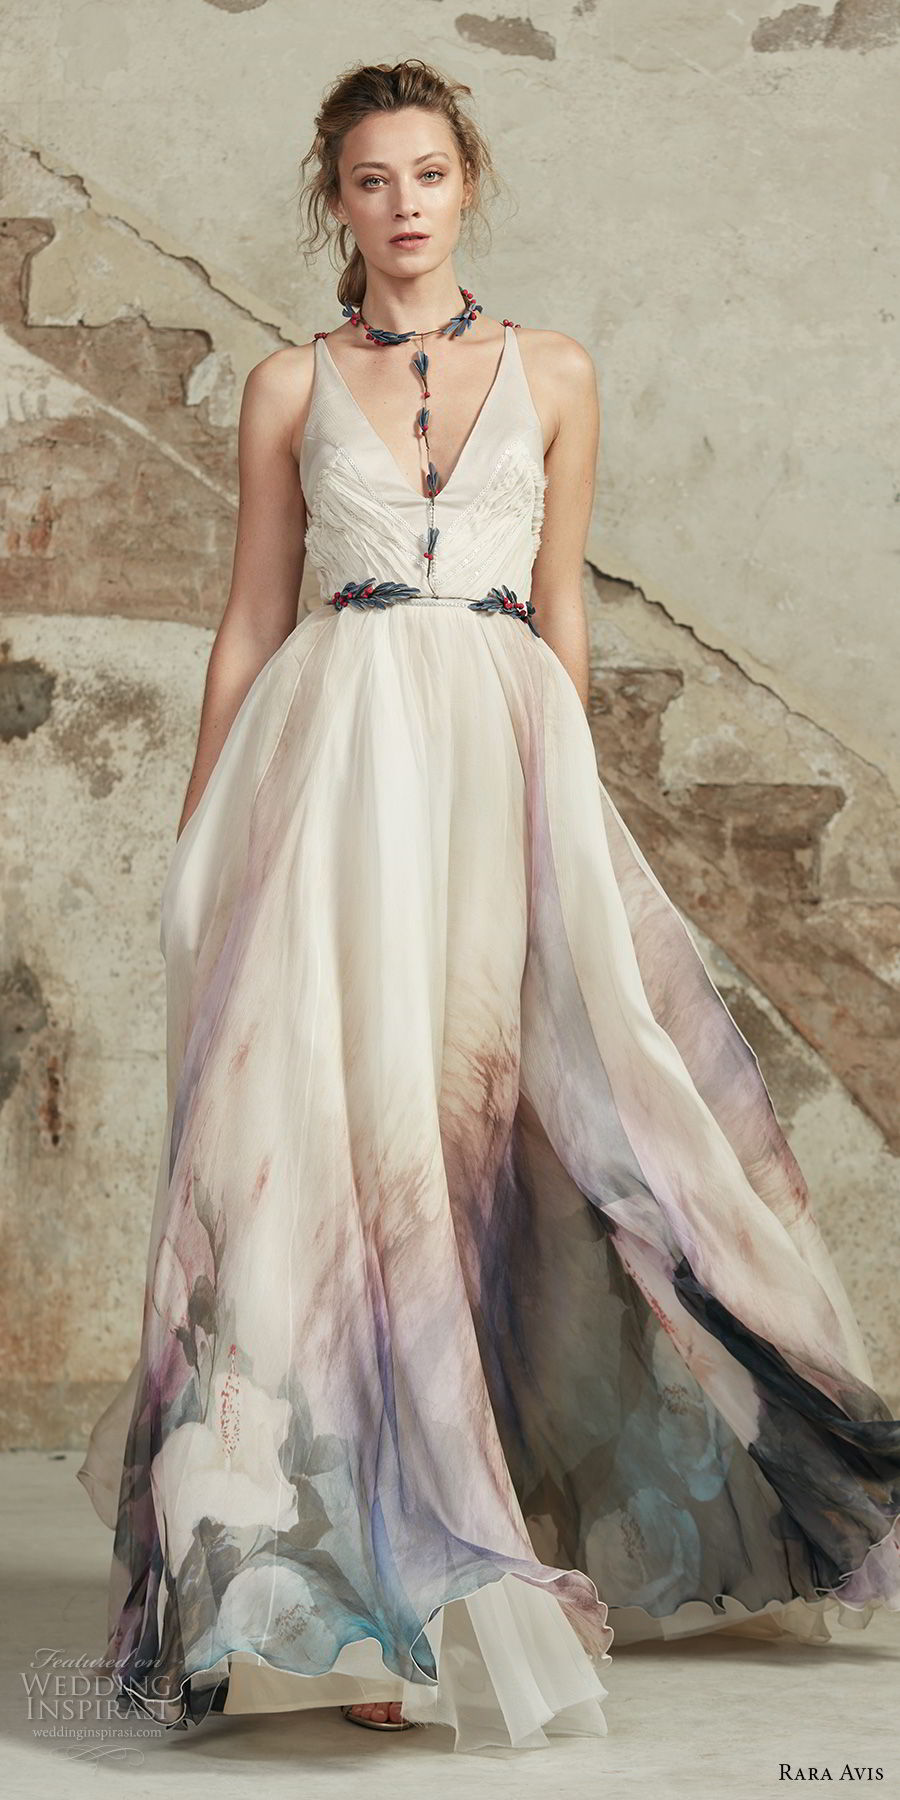 rara avis 2017 bridal strapless v neck lighly embellished colored prints romantic soft a line wedding dress open strap back medium train (23) mv